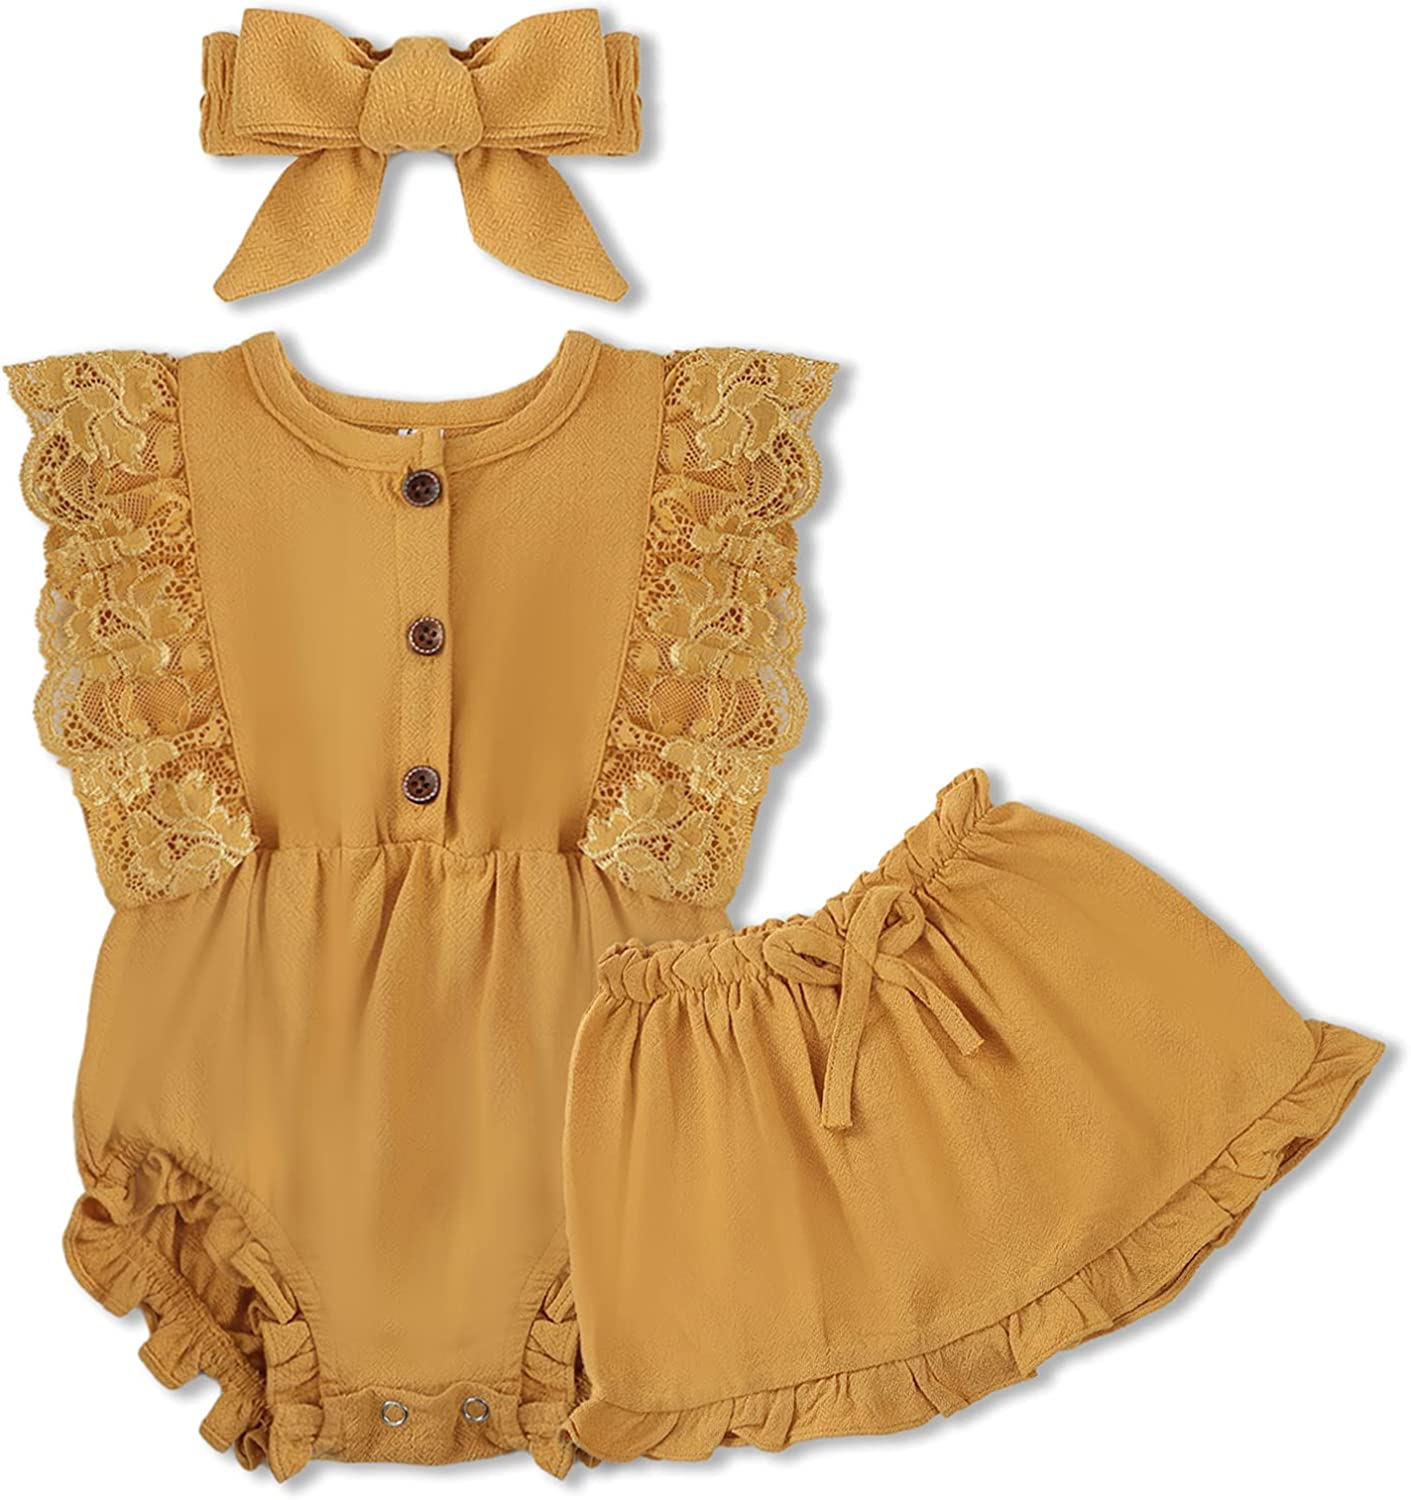 Baby Girl Clothes Ruffled Sleeveless Newborn Girl Clothes Linen Romper Onesies Outfit Toddler Jumpsuit Casual Skirt Set